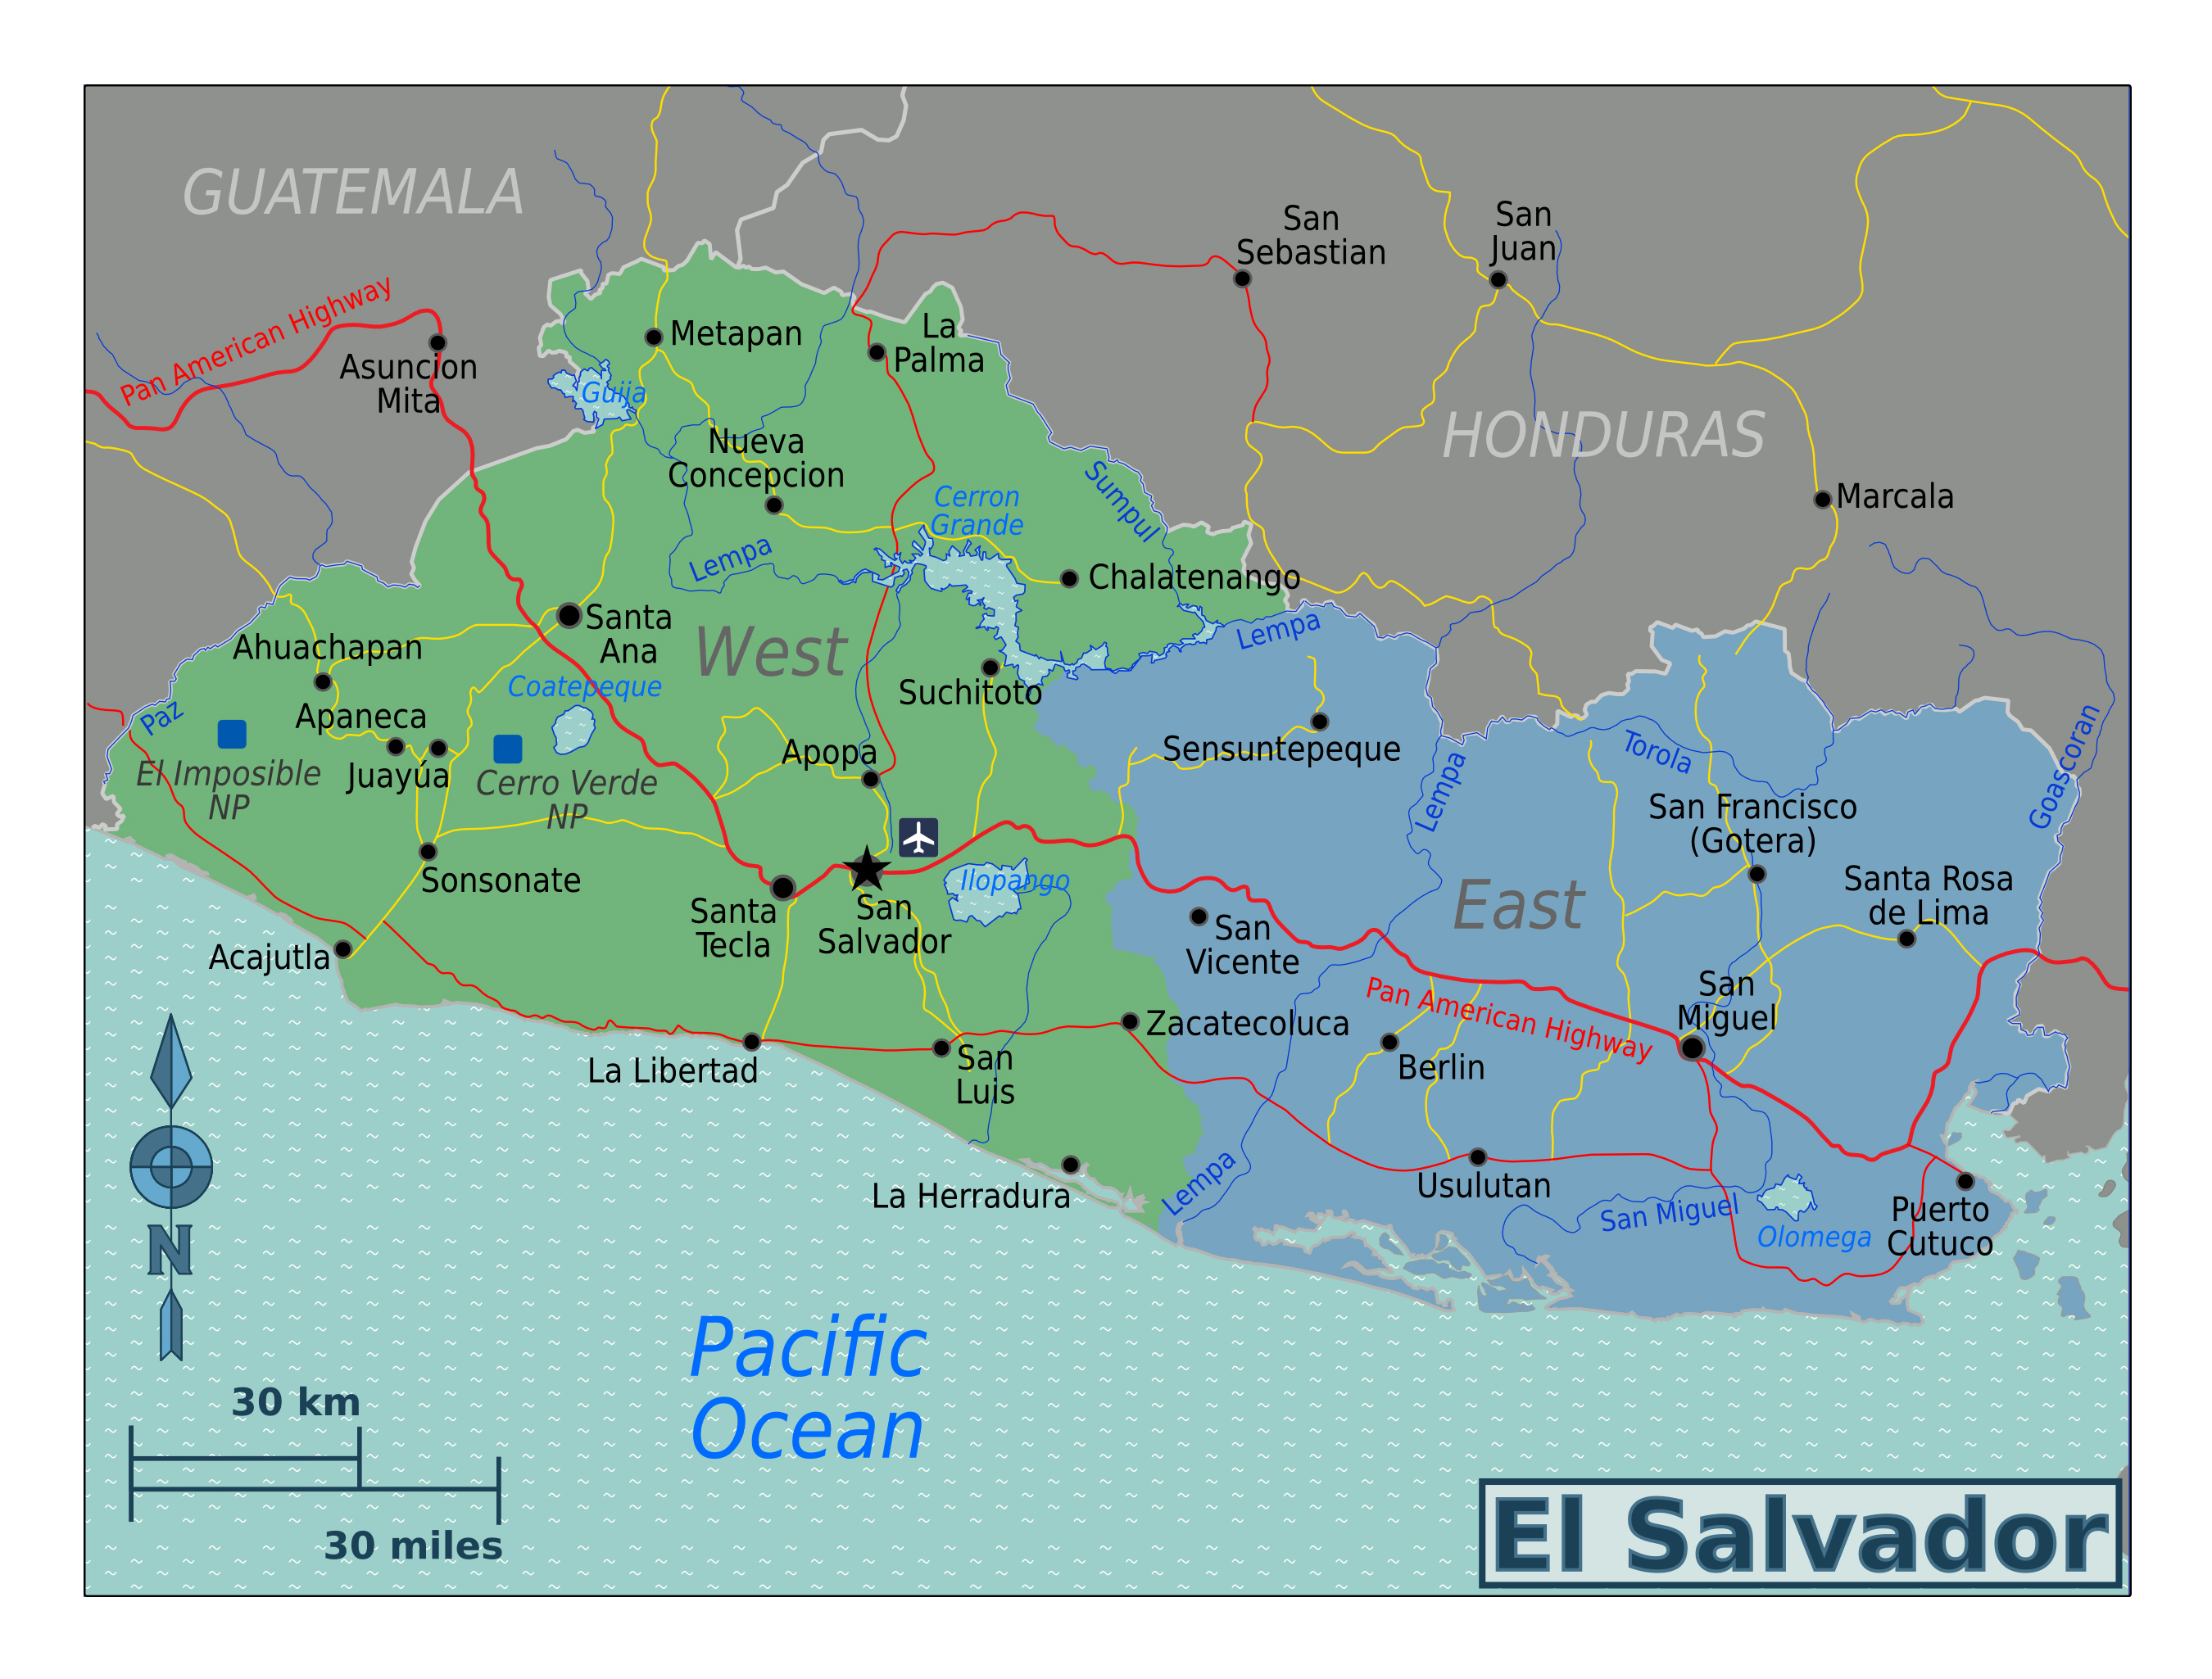 Large regions map of El Salvador | El Salvador | North ... on ahuachapan map, costa rica map, tenochtitlan on map, caribbean map, bahamas map, guatemala map, uruguay map, colombia map, kingston map, chalatenango map, managua map, panama map, tegucigalpa map, havana map, caracas map, honduras map, central america map, santo domingo map, lima map, nassau map,